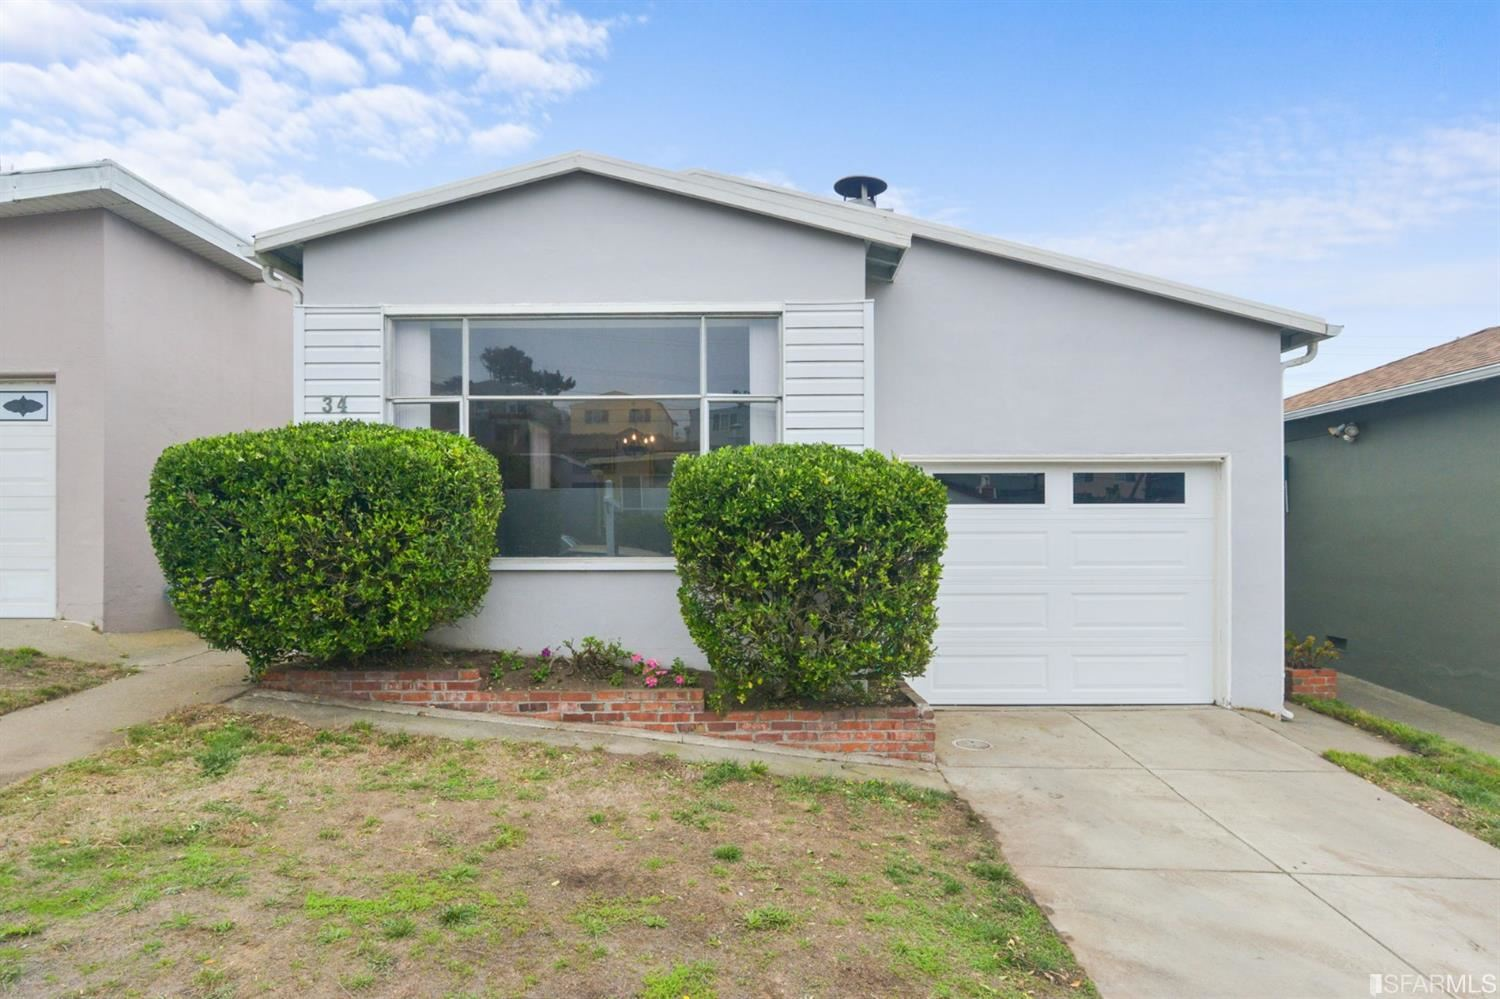 34 Grandview Avenue, Daly City, CA 94015 - #: 507844